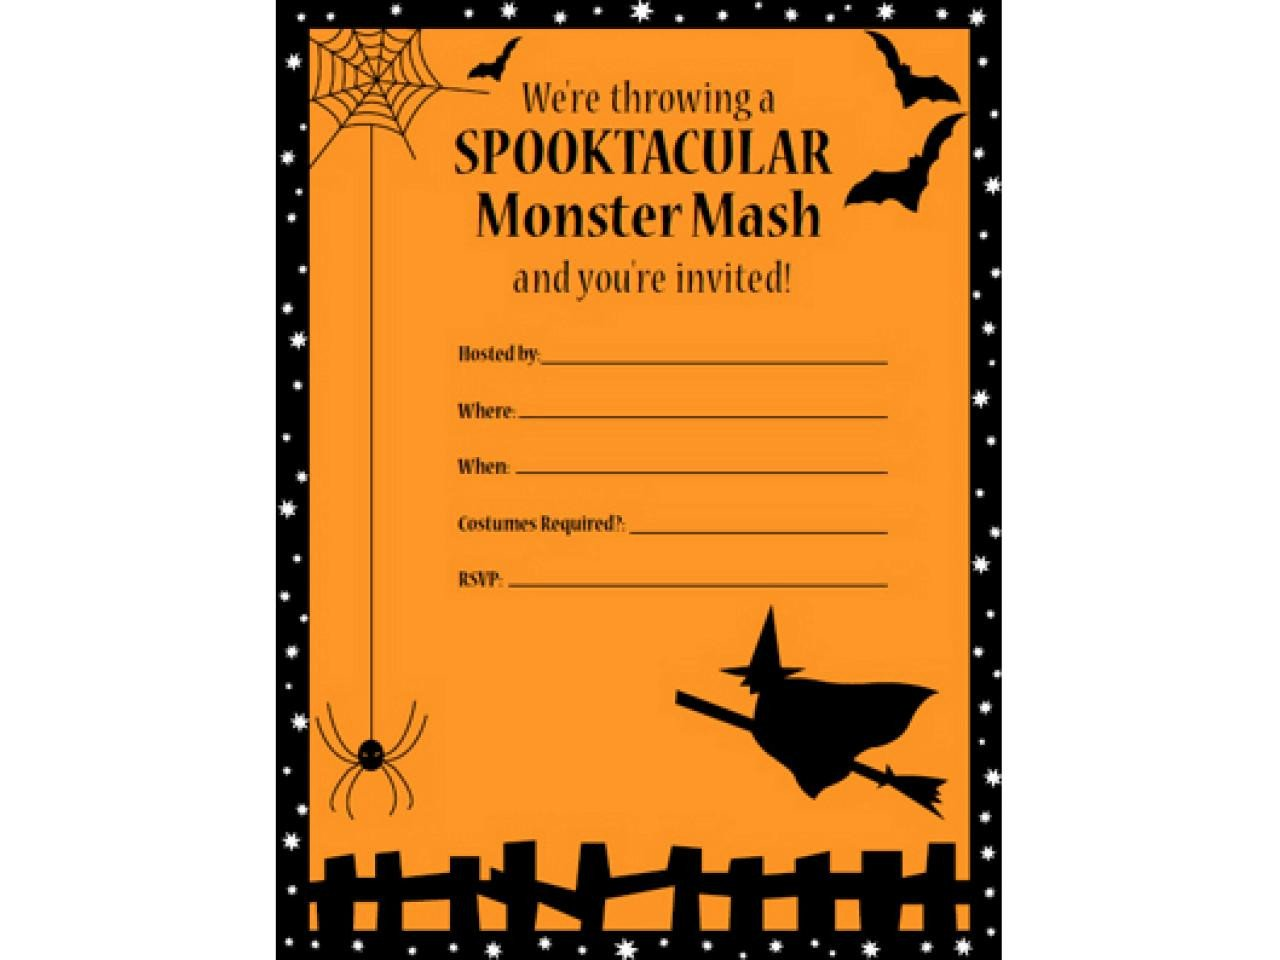 Free Halloween Invites Templates 41 Printable and Free Halloween Templates